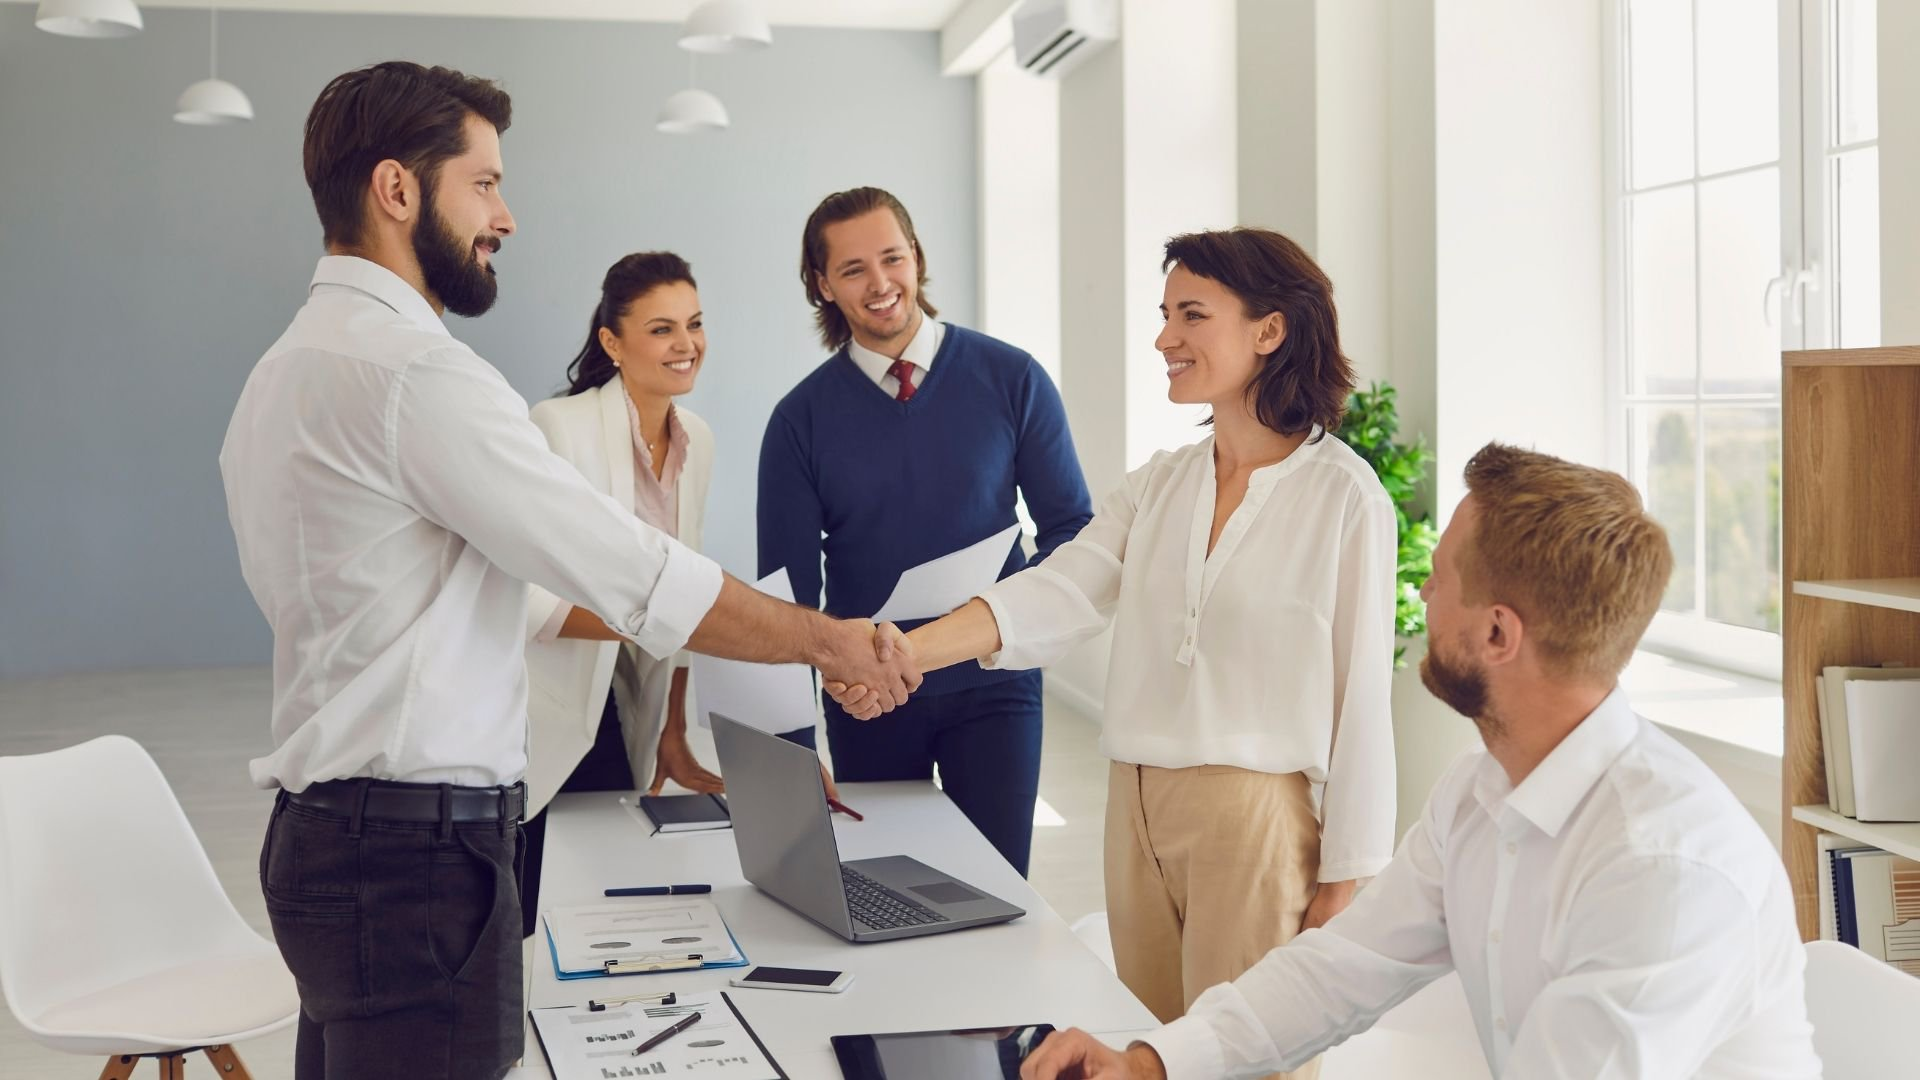 HR chatbots: some good reasons (and cons) to use them in human resources